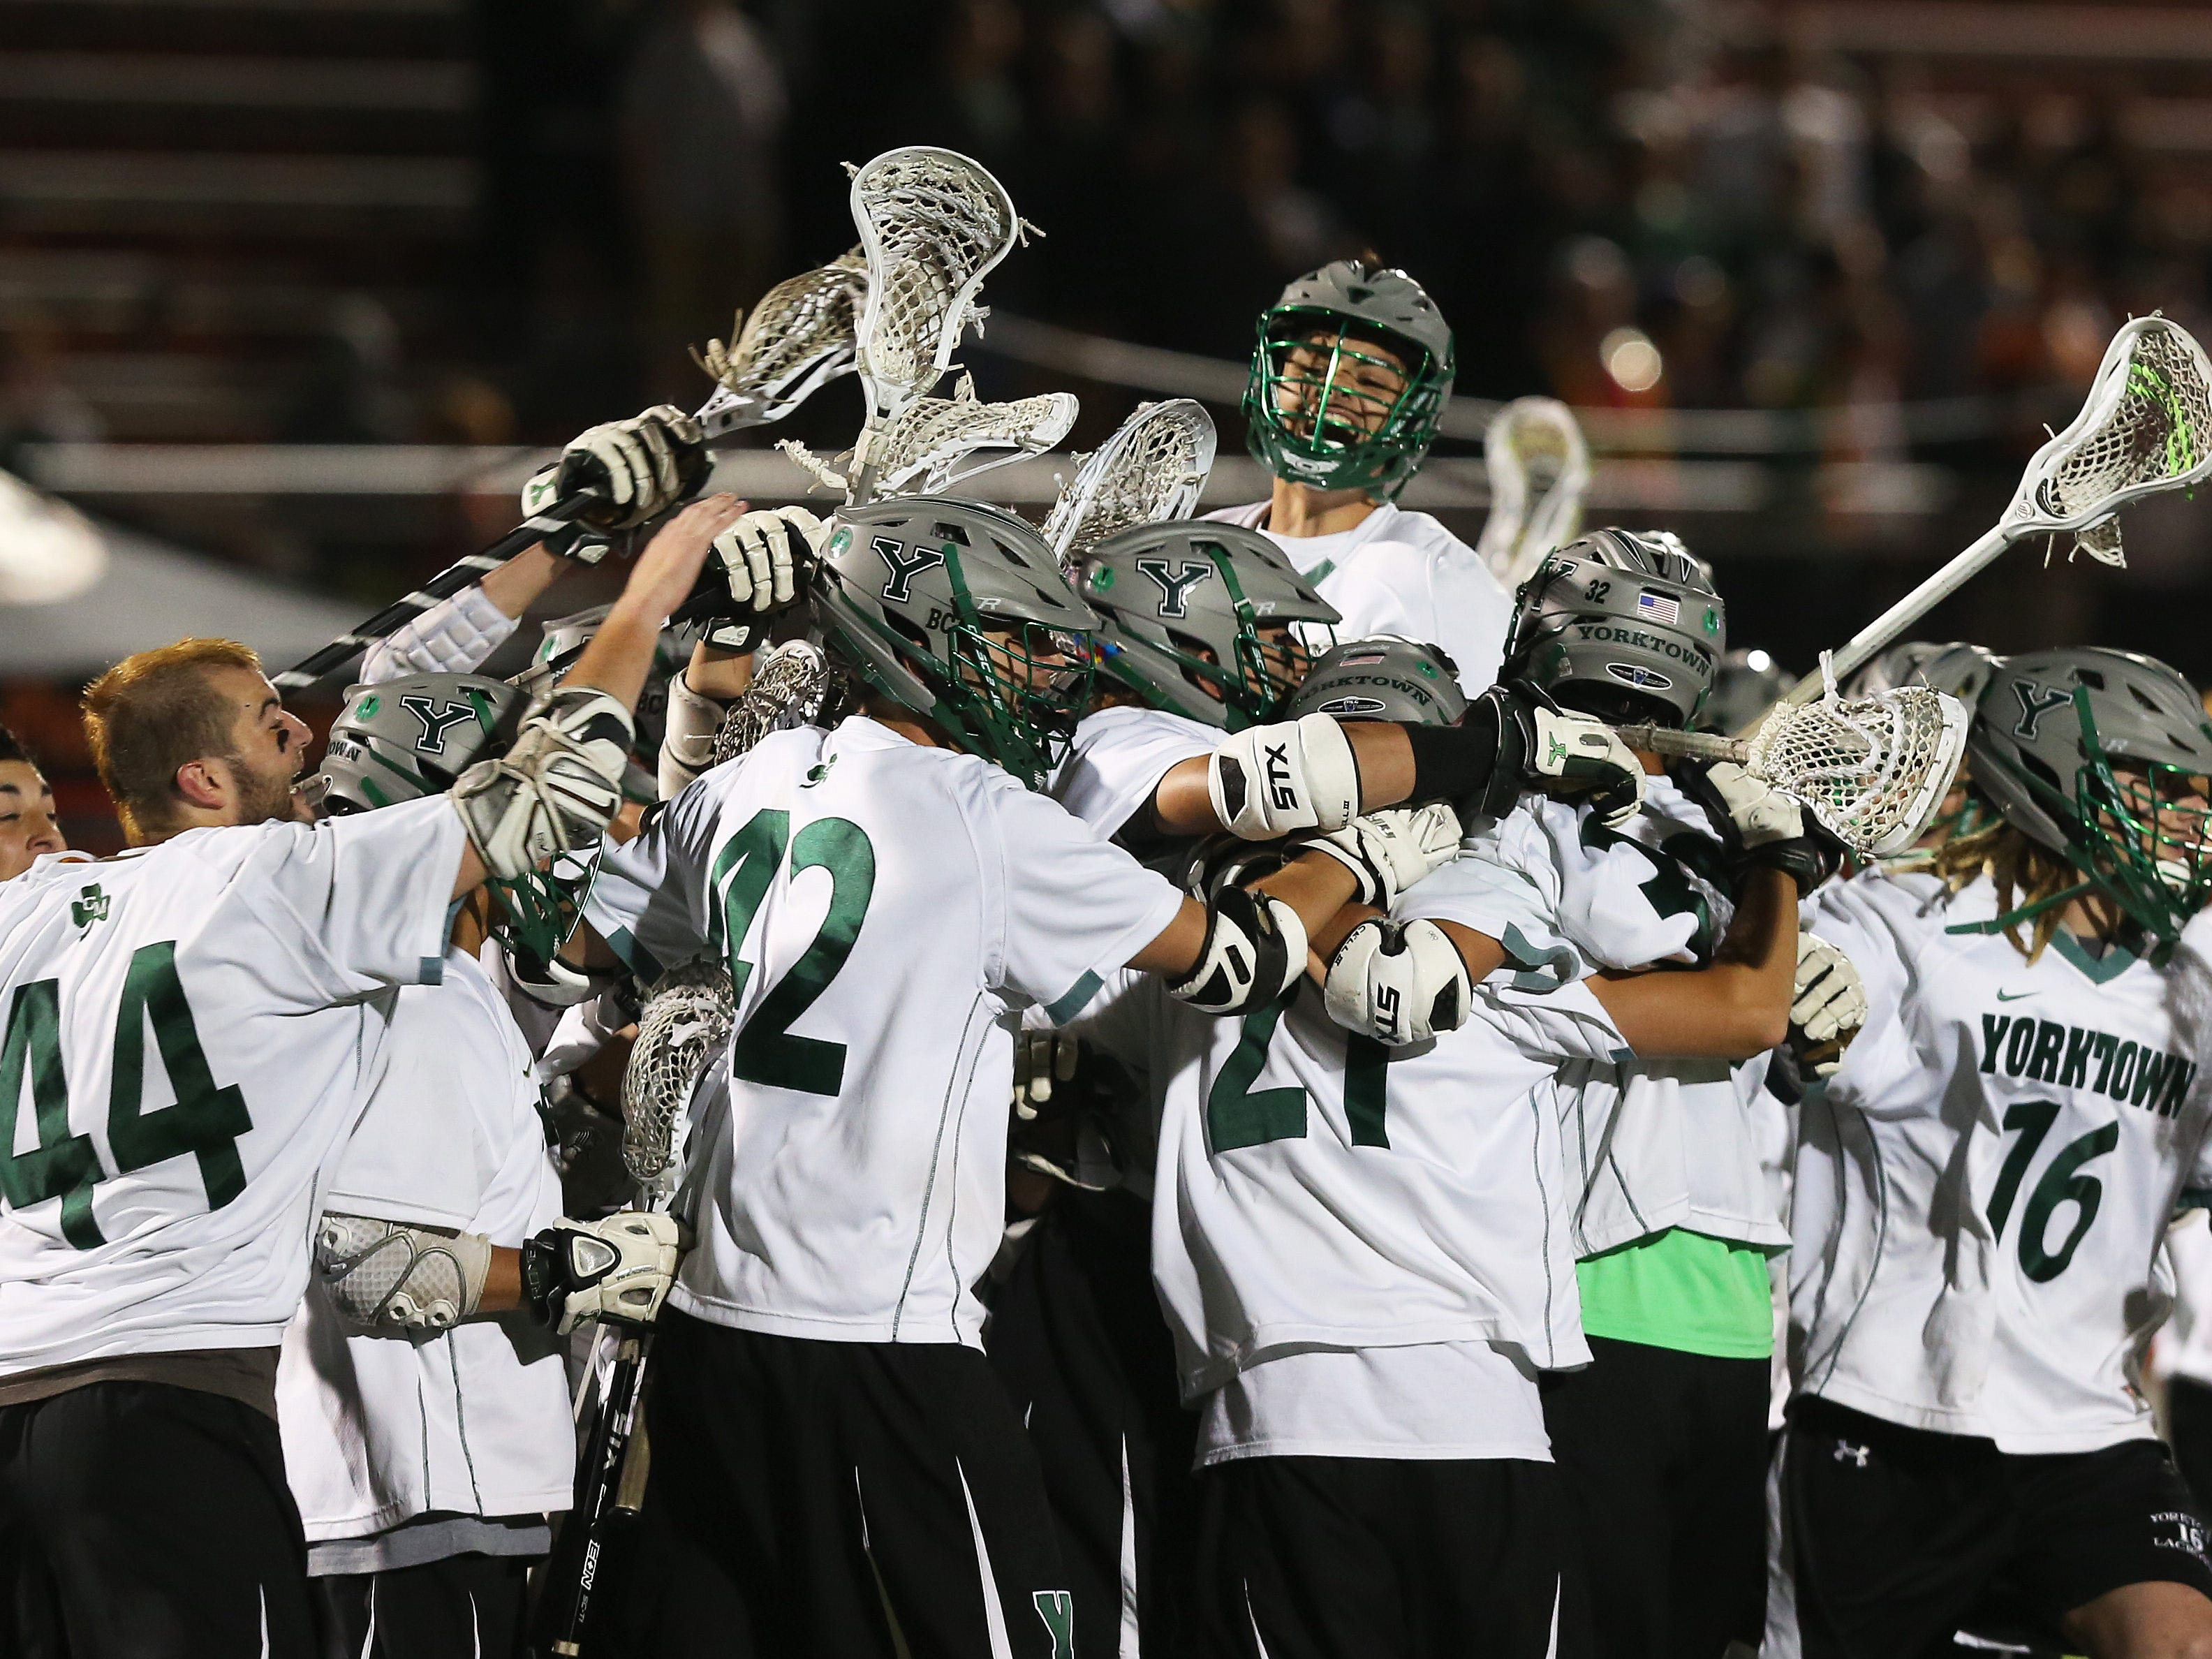 Yorktown withstood a late comeback bid by John Jay in the Class B final.